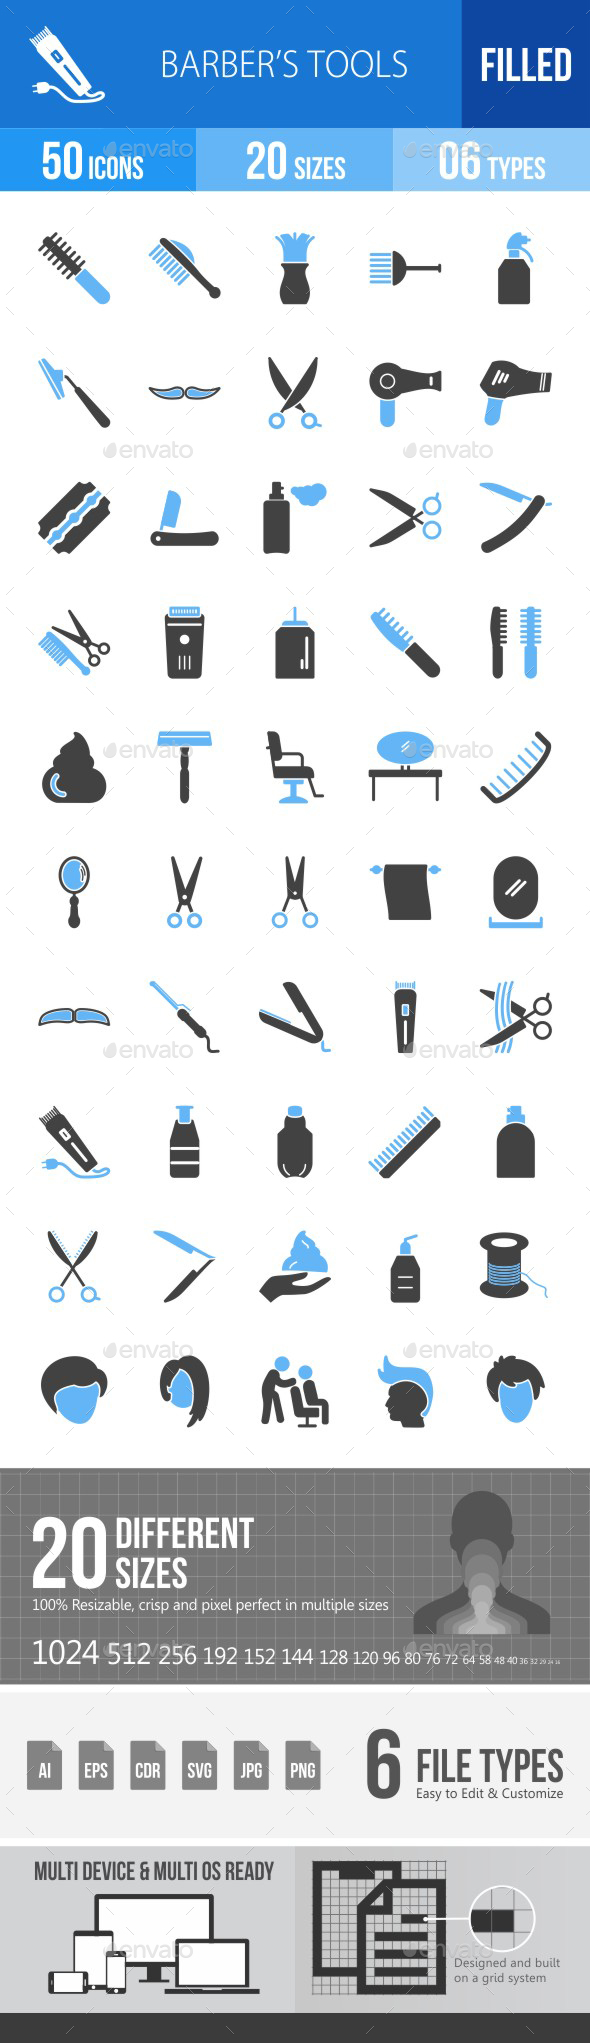 Barber's Tools Blue & Black Icons - Icons